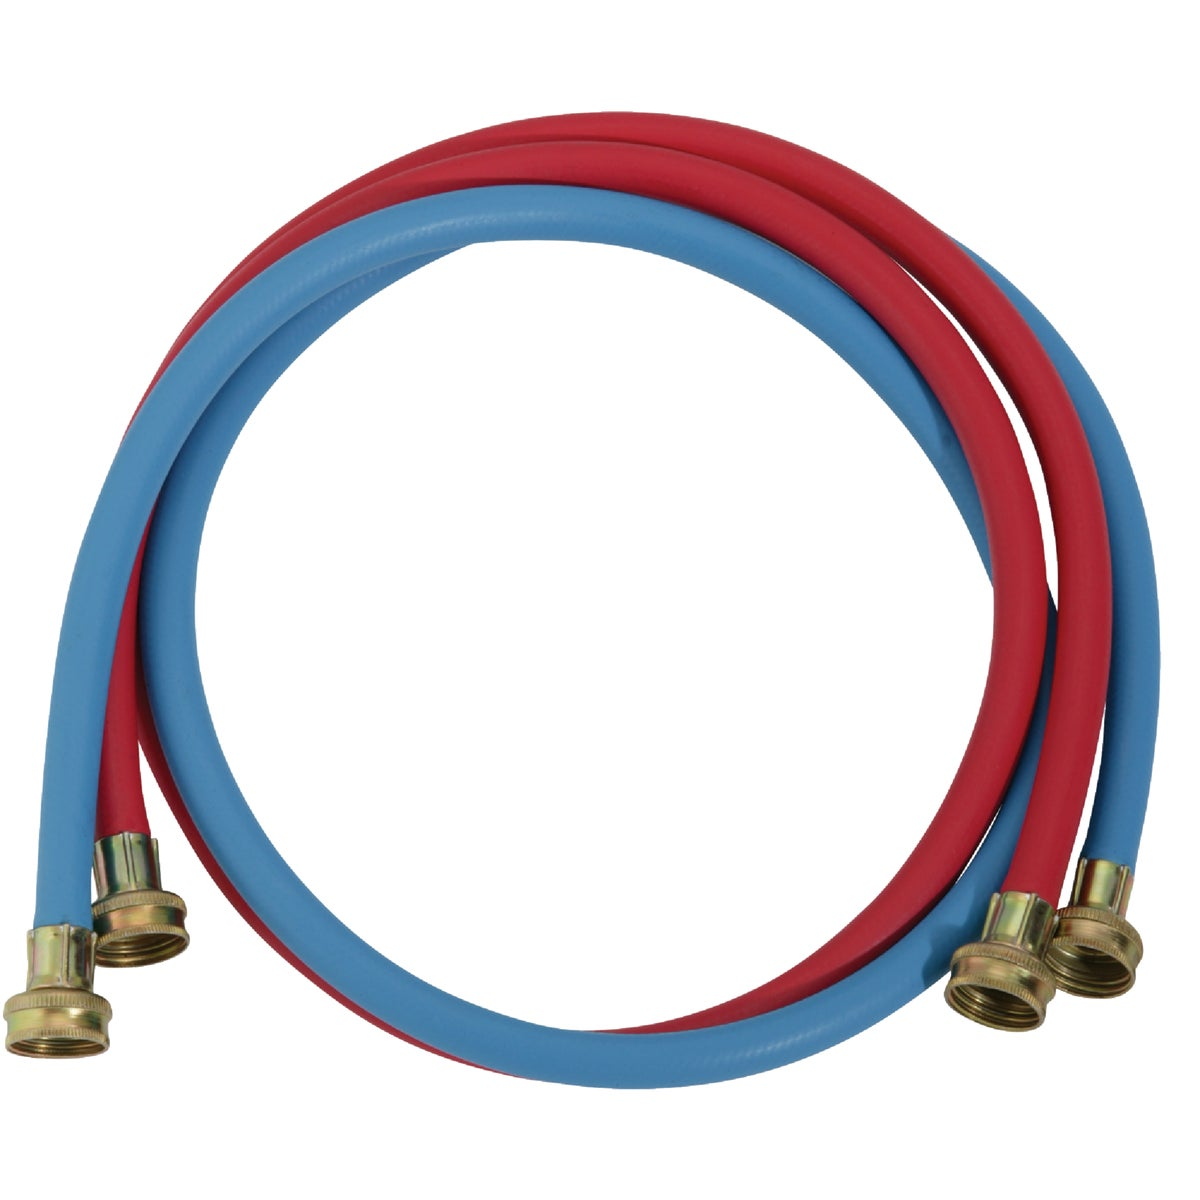 2PK 5' WASH MACHINE HOSE - 093212 by Wm H Harvey Co